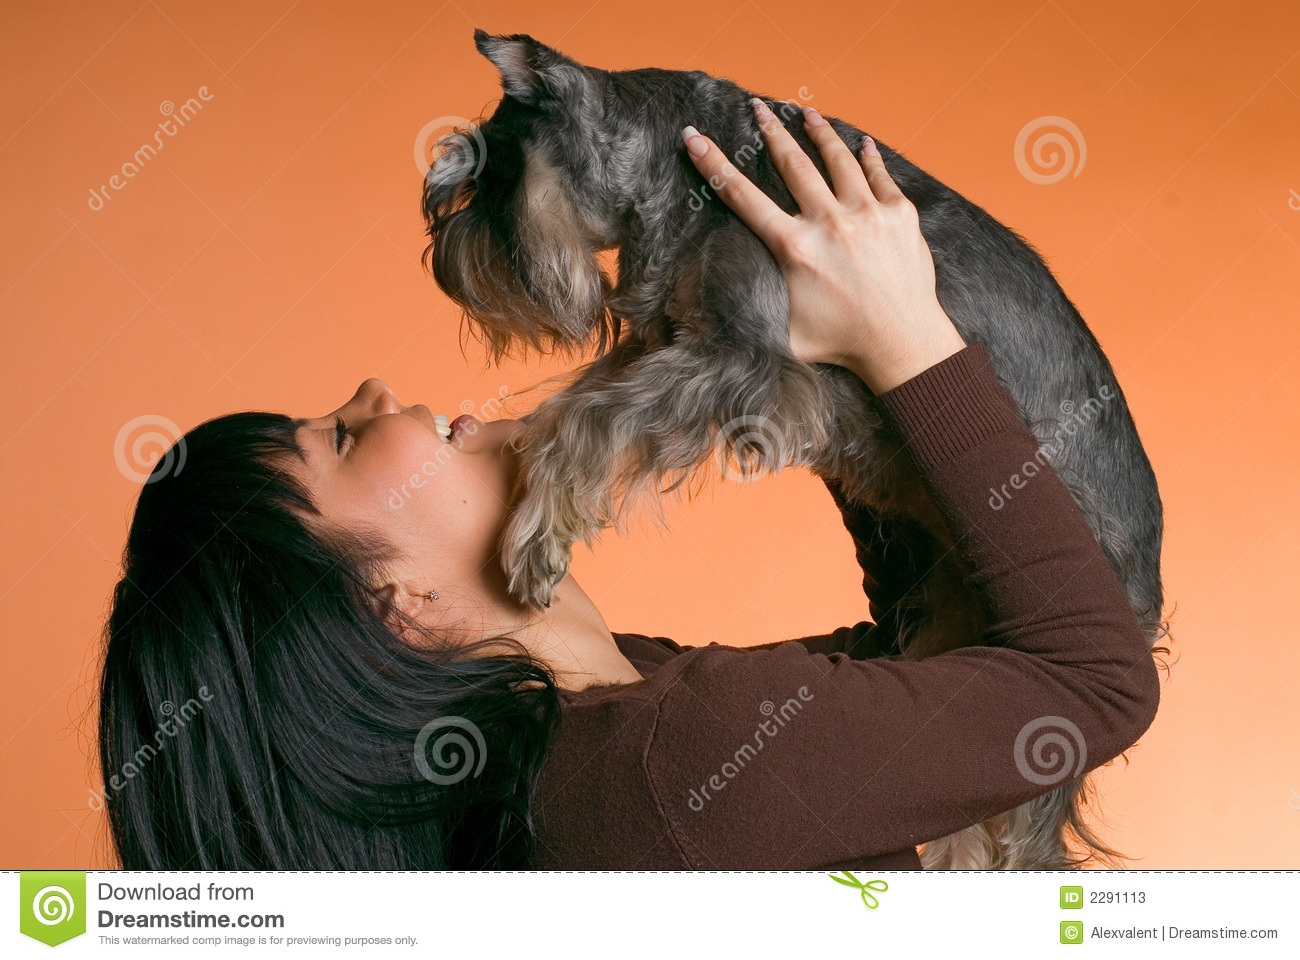 The girl with a dog